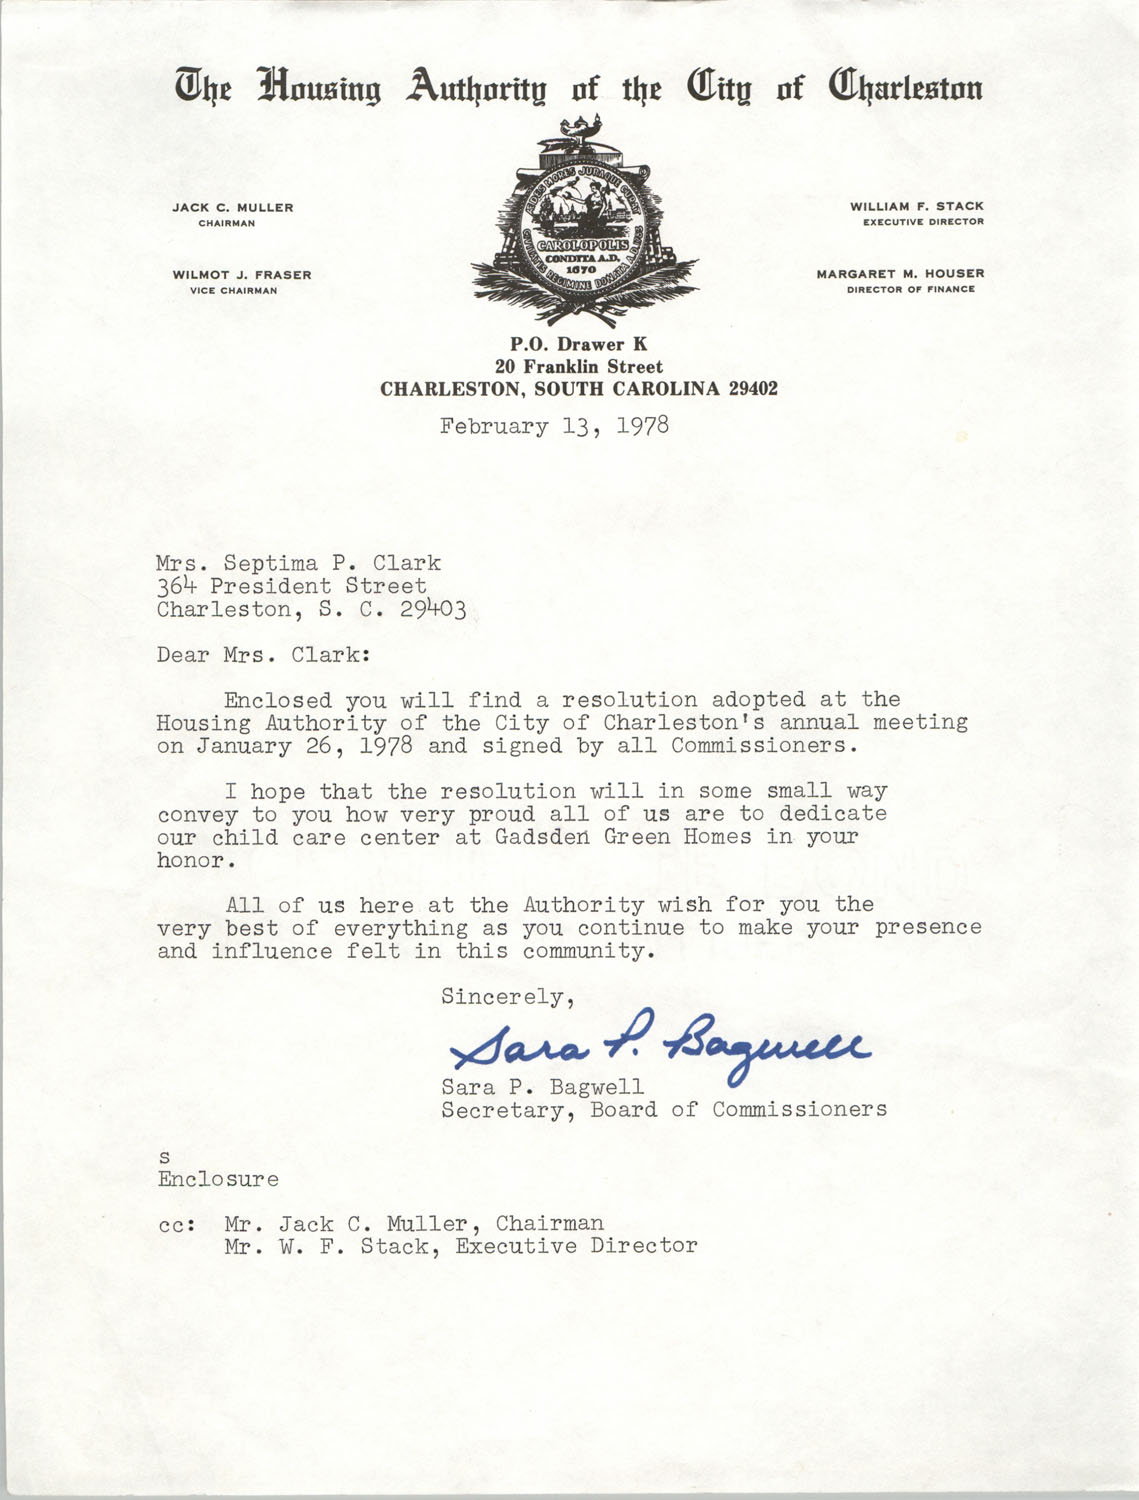 Letter from Sara P. Bagwell to Septima P. Clark, February 13, 1978